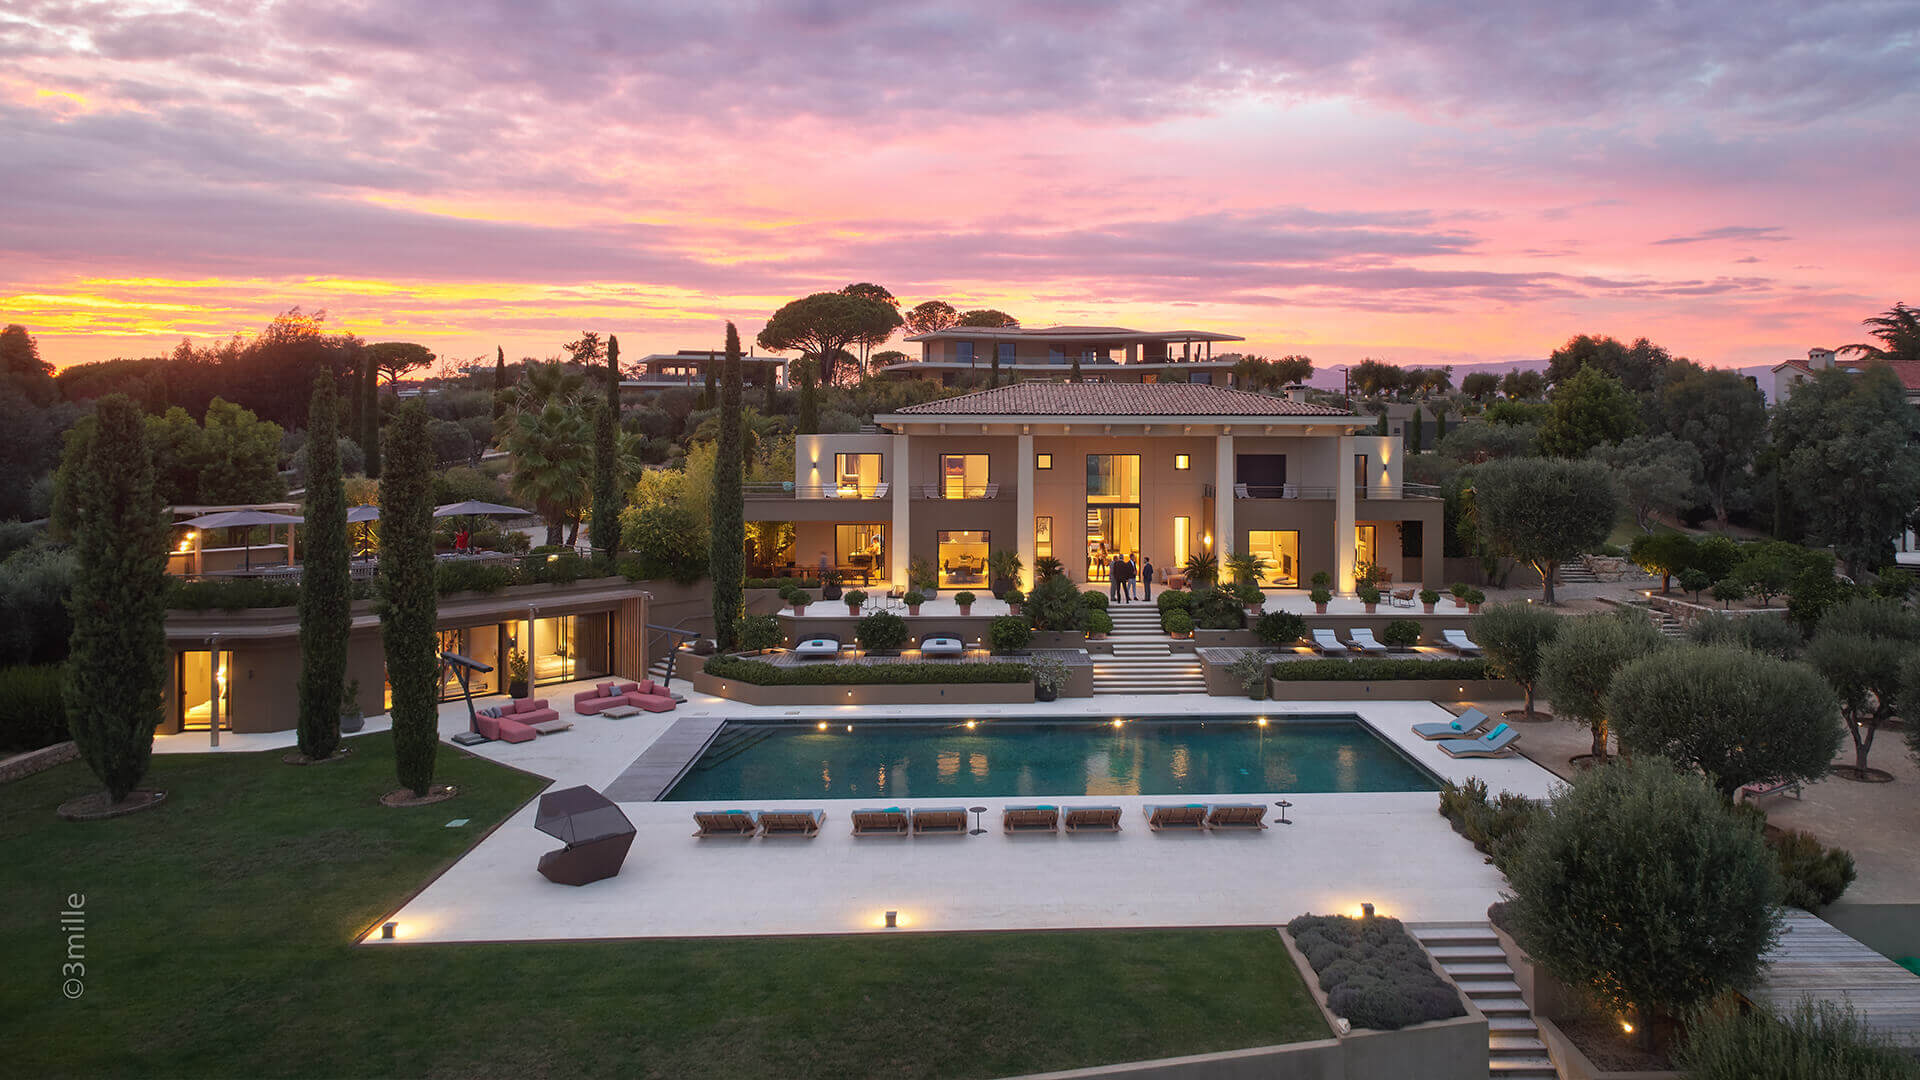 Super Cannes Luxury villa full view